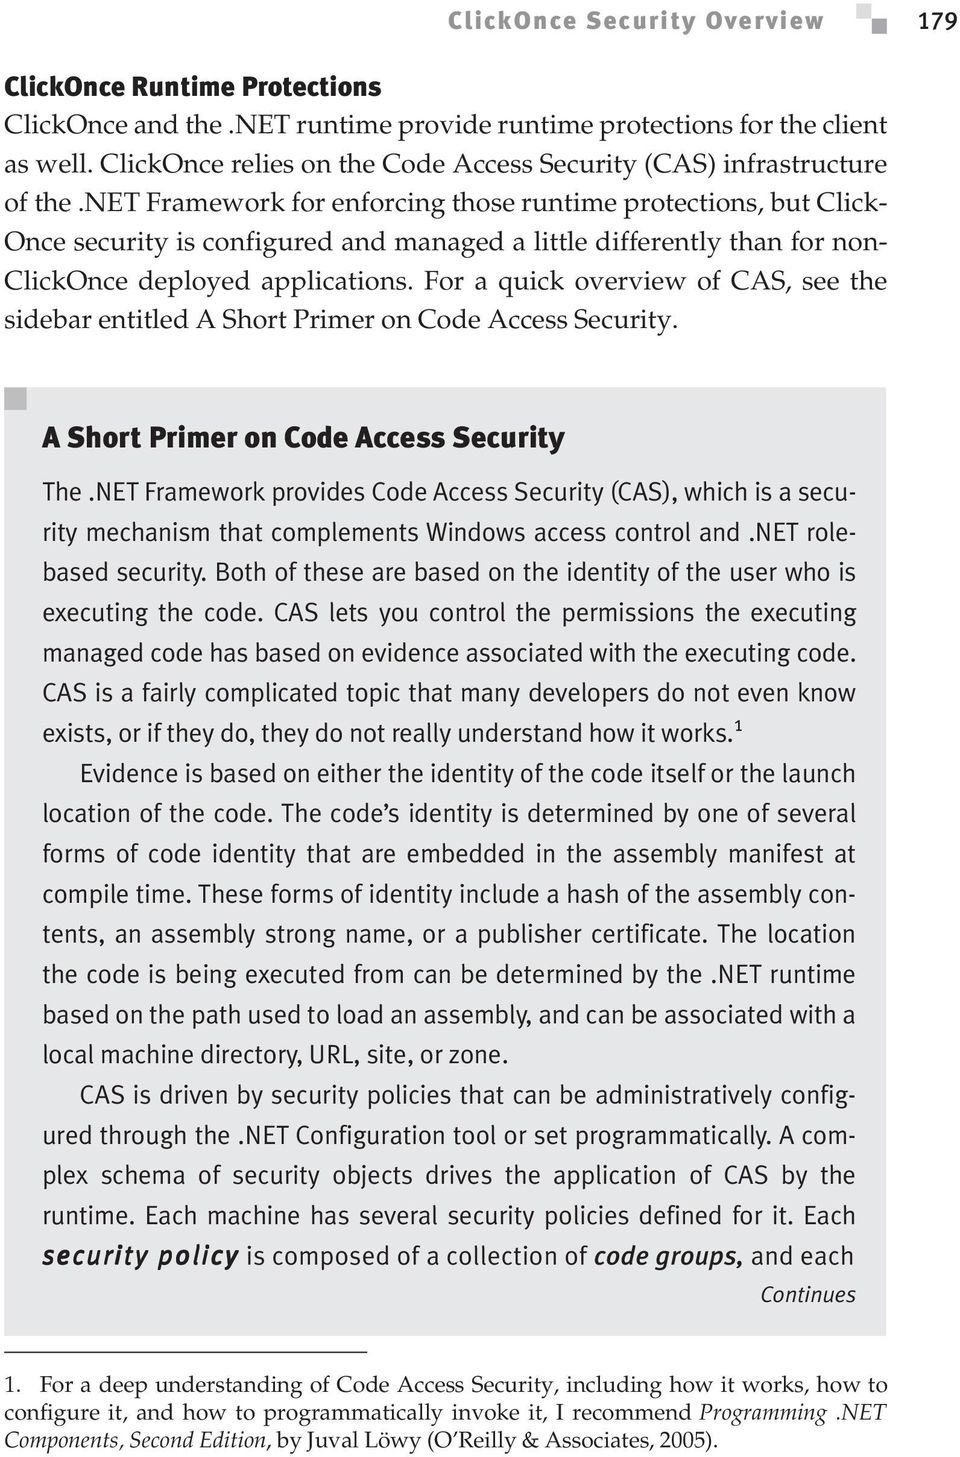 ClickOnce Security  ClickOnce Security Overview  of